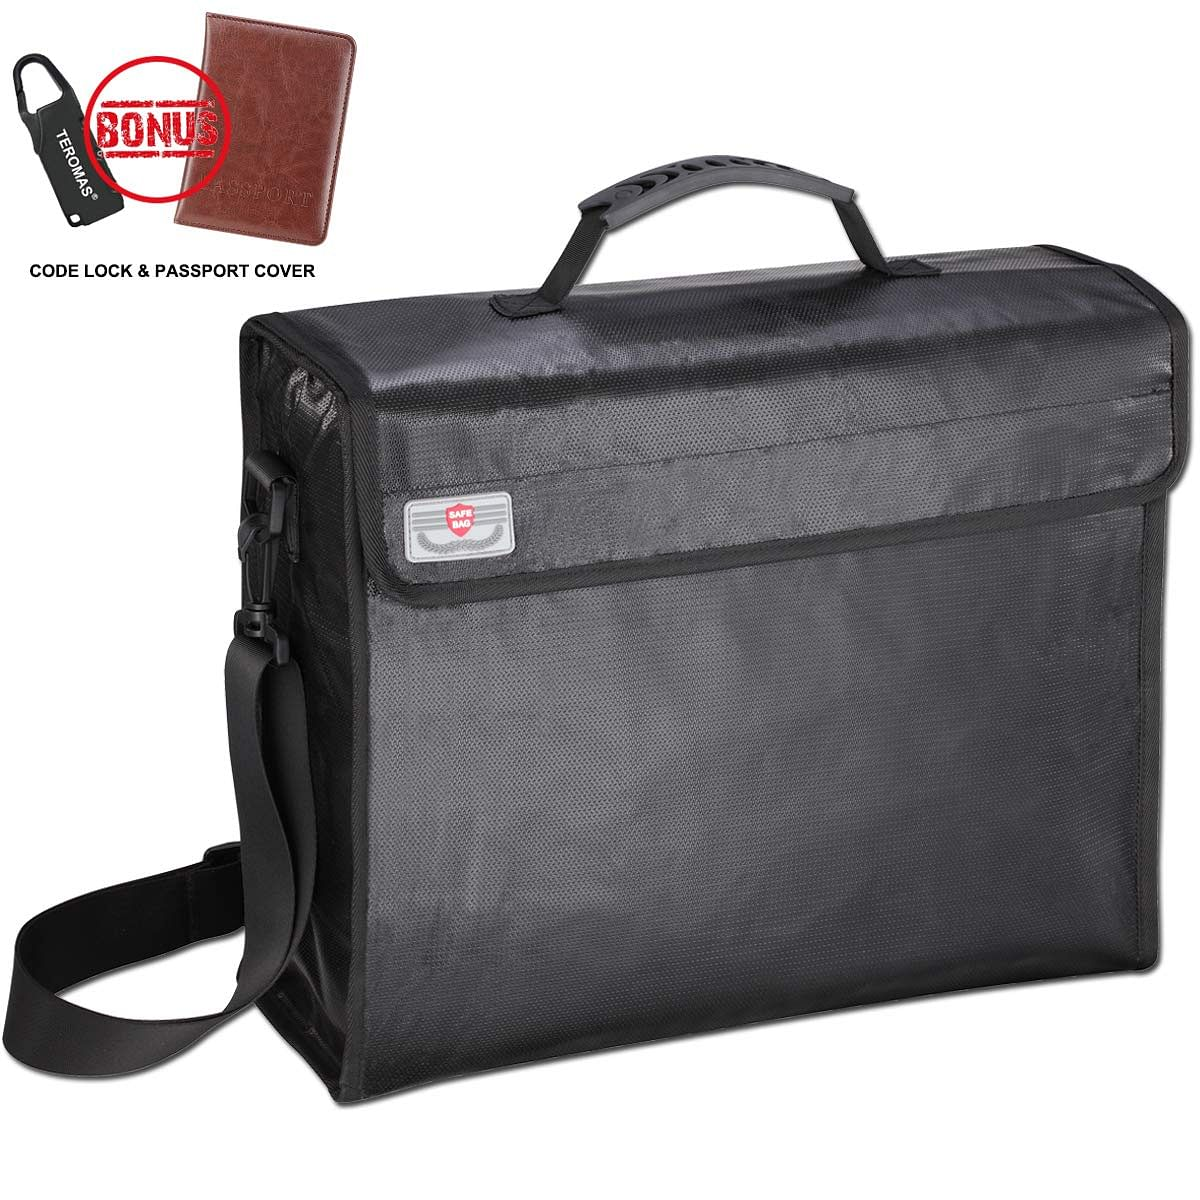 Fireproof Document Bag with Lock Zipper and Velcro Closure 12 x 15